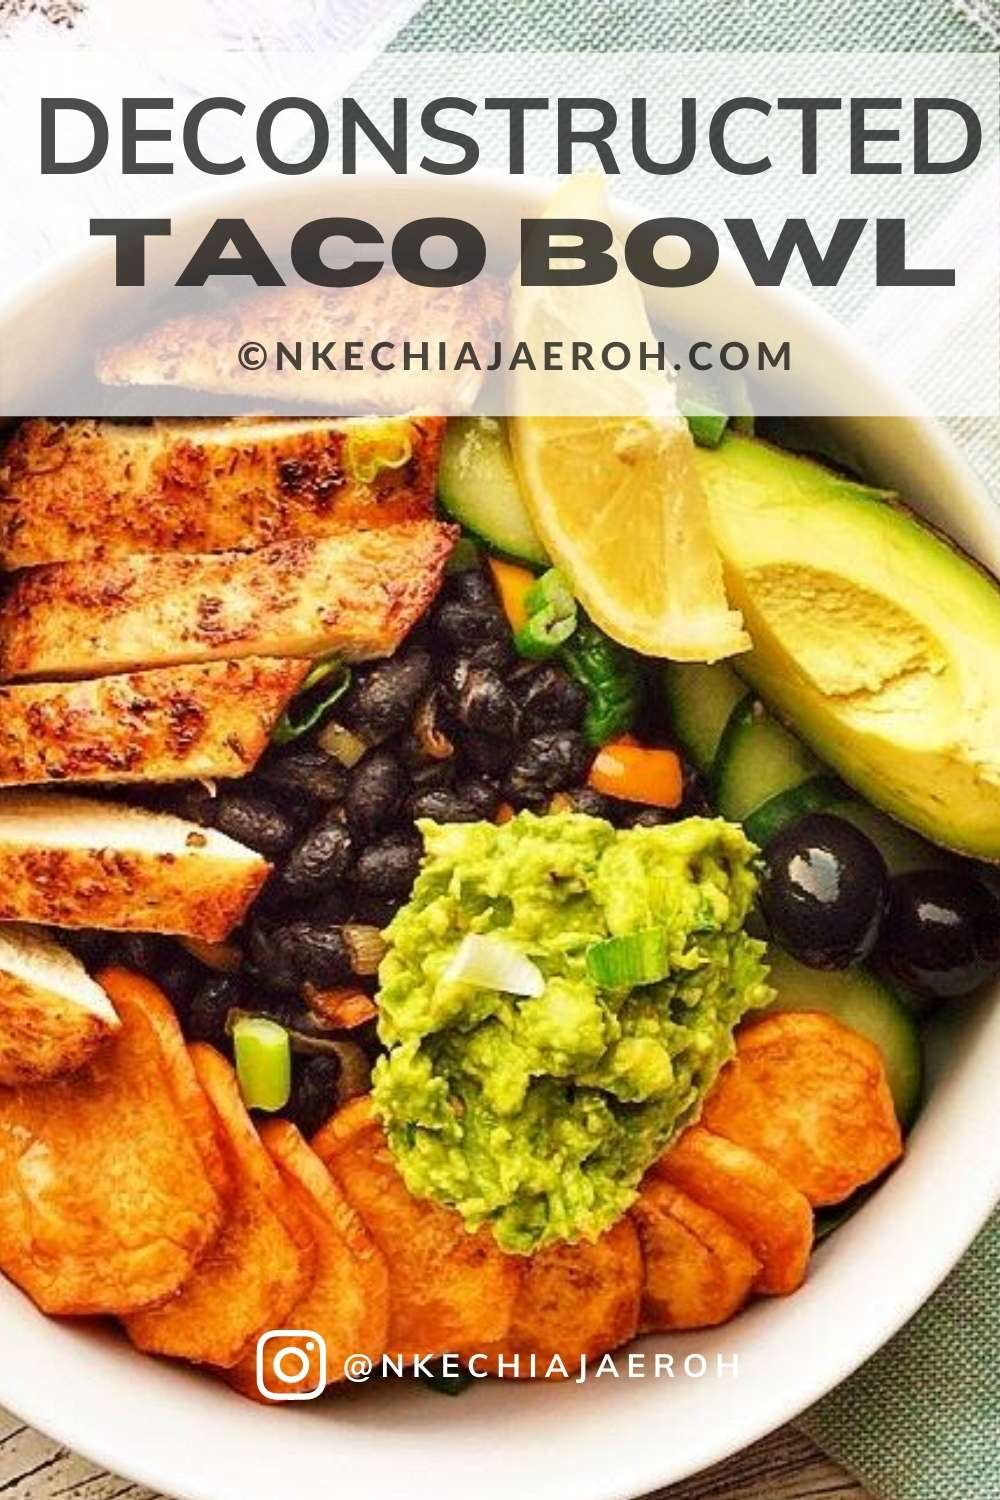 This healthy and nutritious deconstructed taco bowl recipe is the best salad!  It is easy to make and tastes incredibly delicious! This is the only taco Bowl you need; it is excellent for healthy meal prep, in other words, prep a bunch of things ahead such as black beans, chicken, cut cucumbers, etc., This healthy, taco salad recipe incorporates sweet potatoes, and it makes it even tastier and satisfying! #tacorecipe, #blackbeanstaco #burritobowl #chickentaco #tacobowl